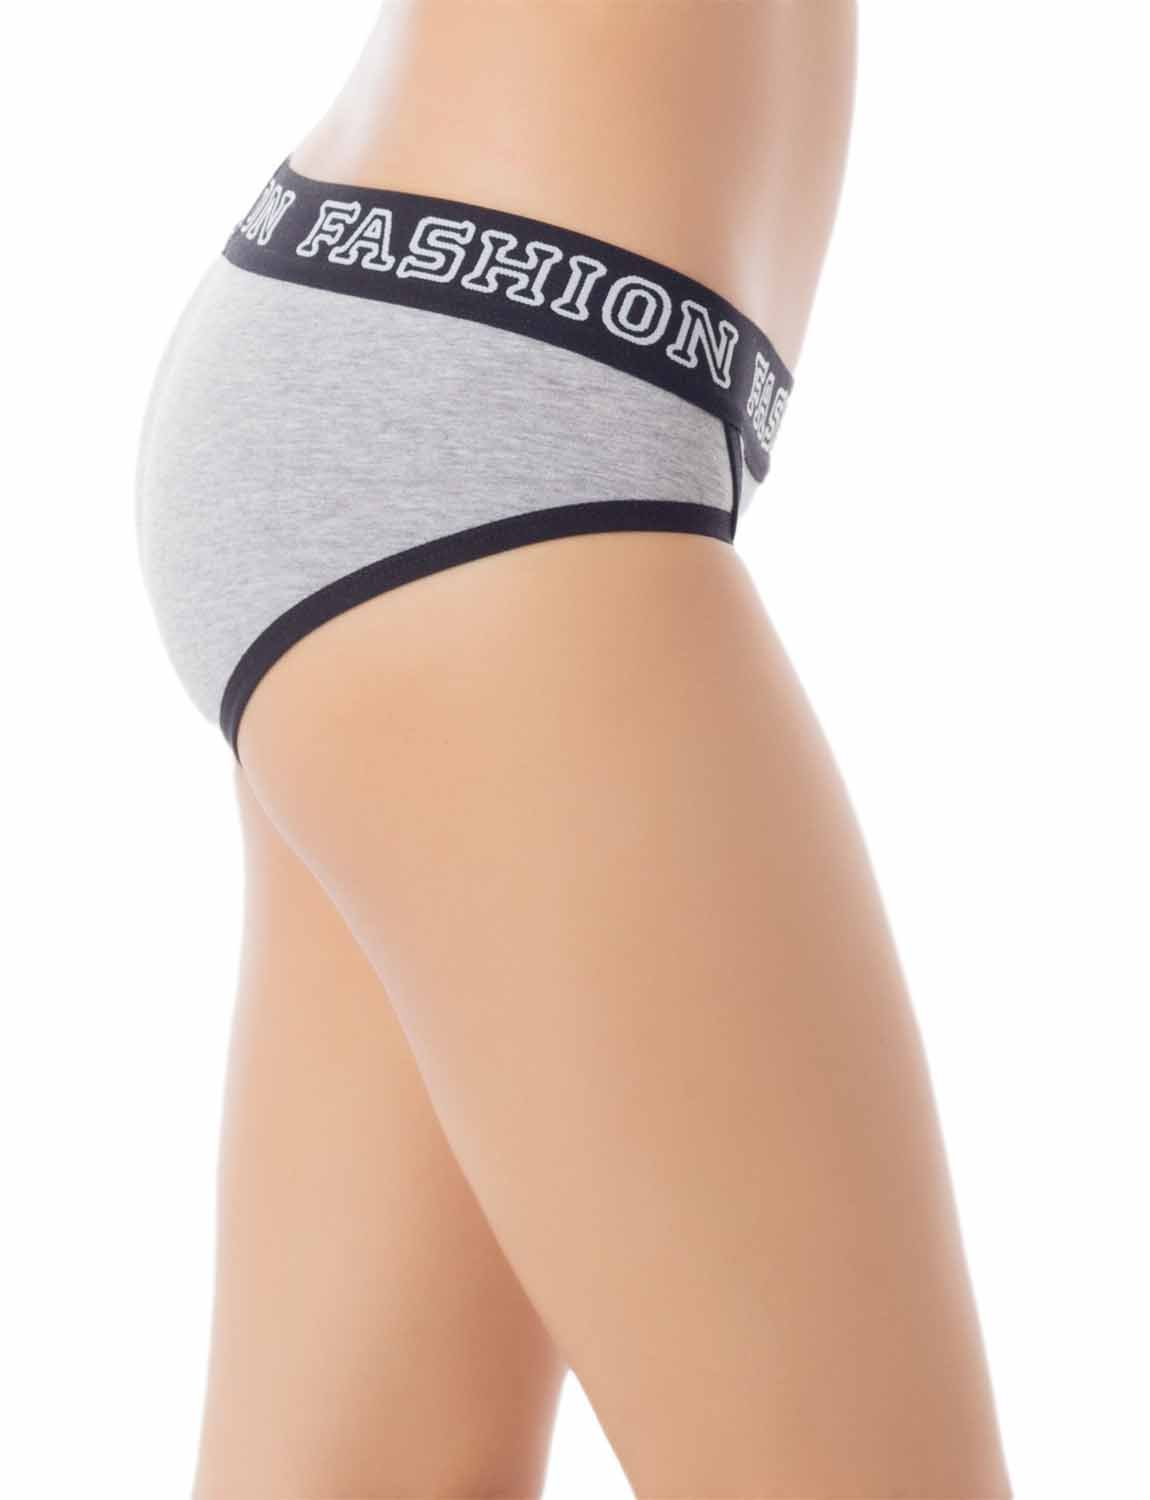 Women's Comfort Soft Cotton Sports Fashion Briefs Low Rise Hipster Panty, Size: L, Light Grey